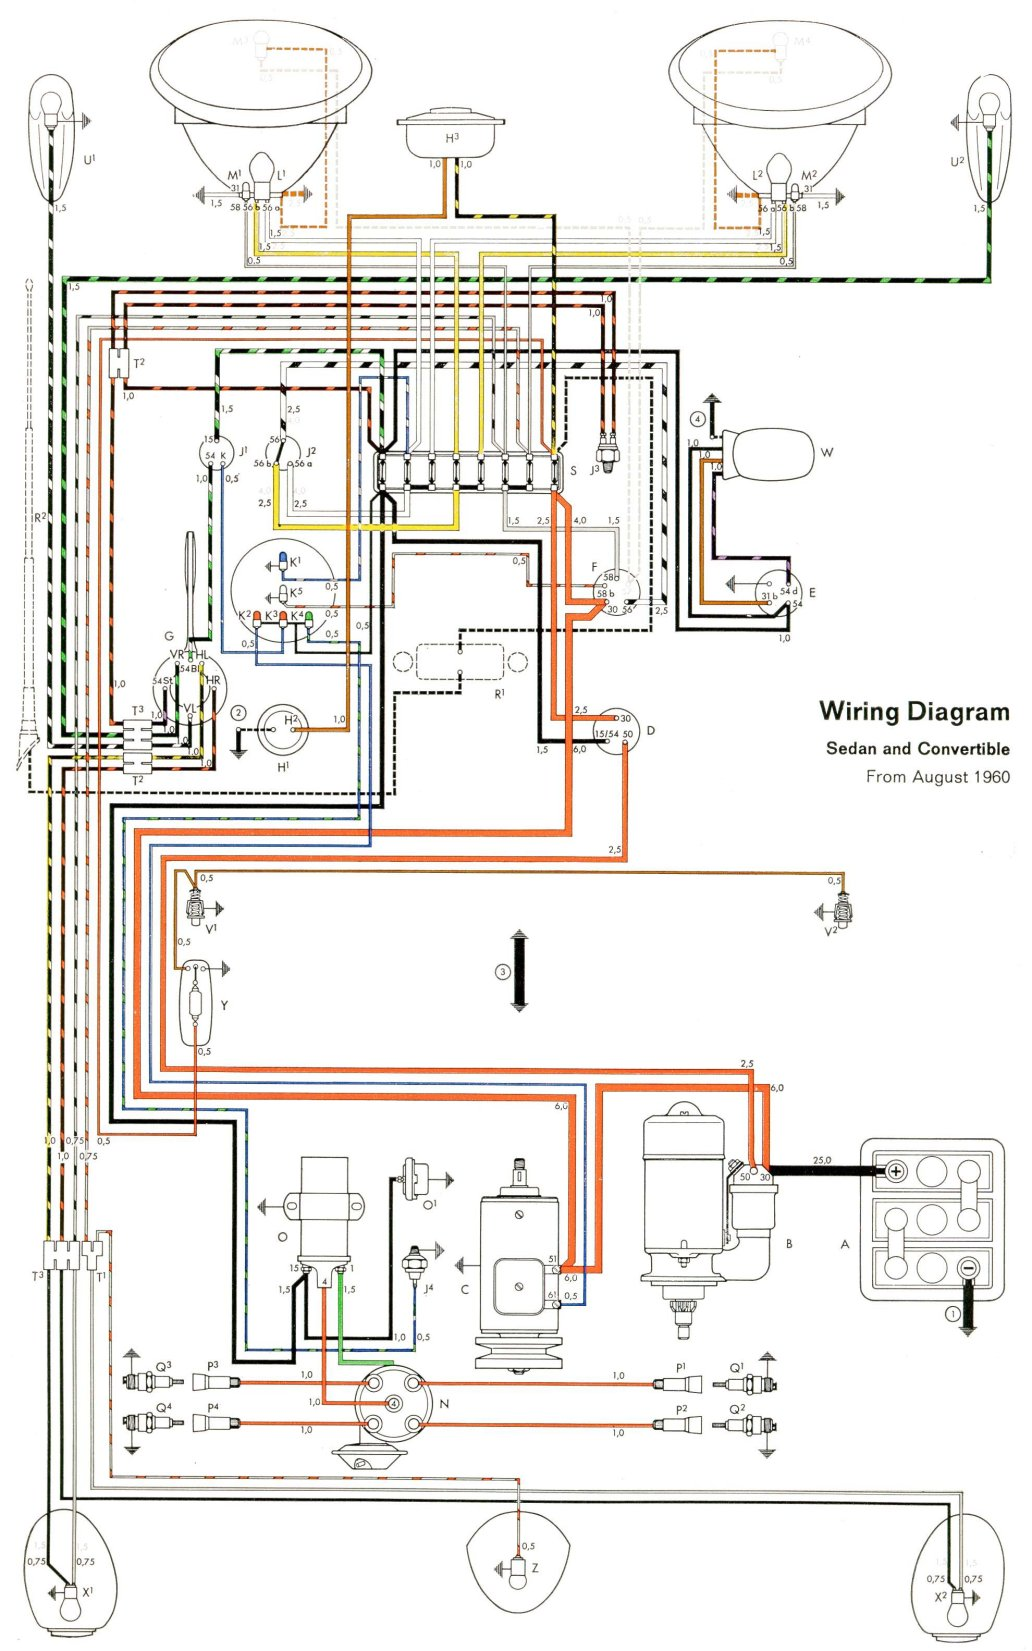 bug_61 thesamba com type 1 wiring diagrams vw wiring diagrams at readyjetset.co